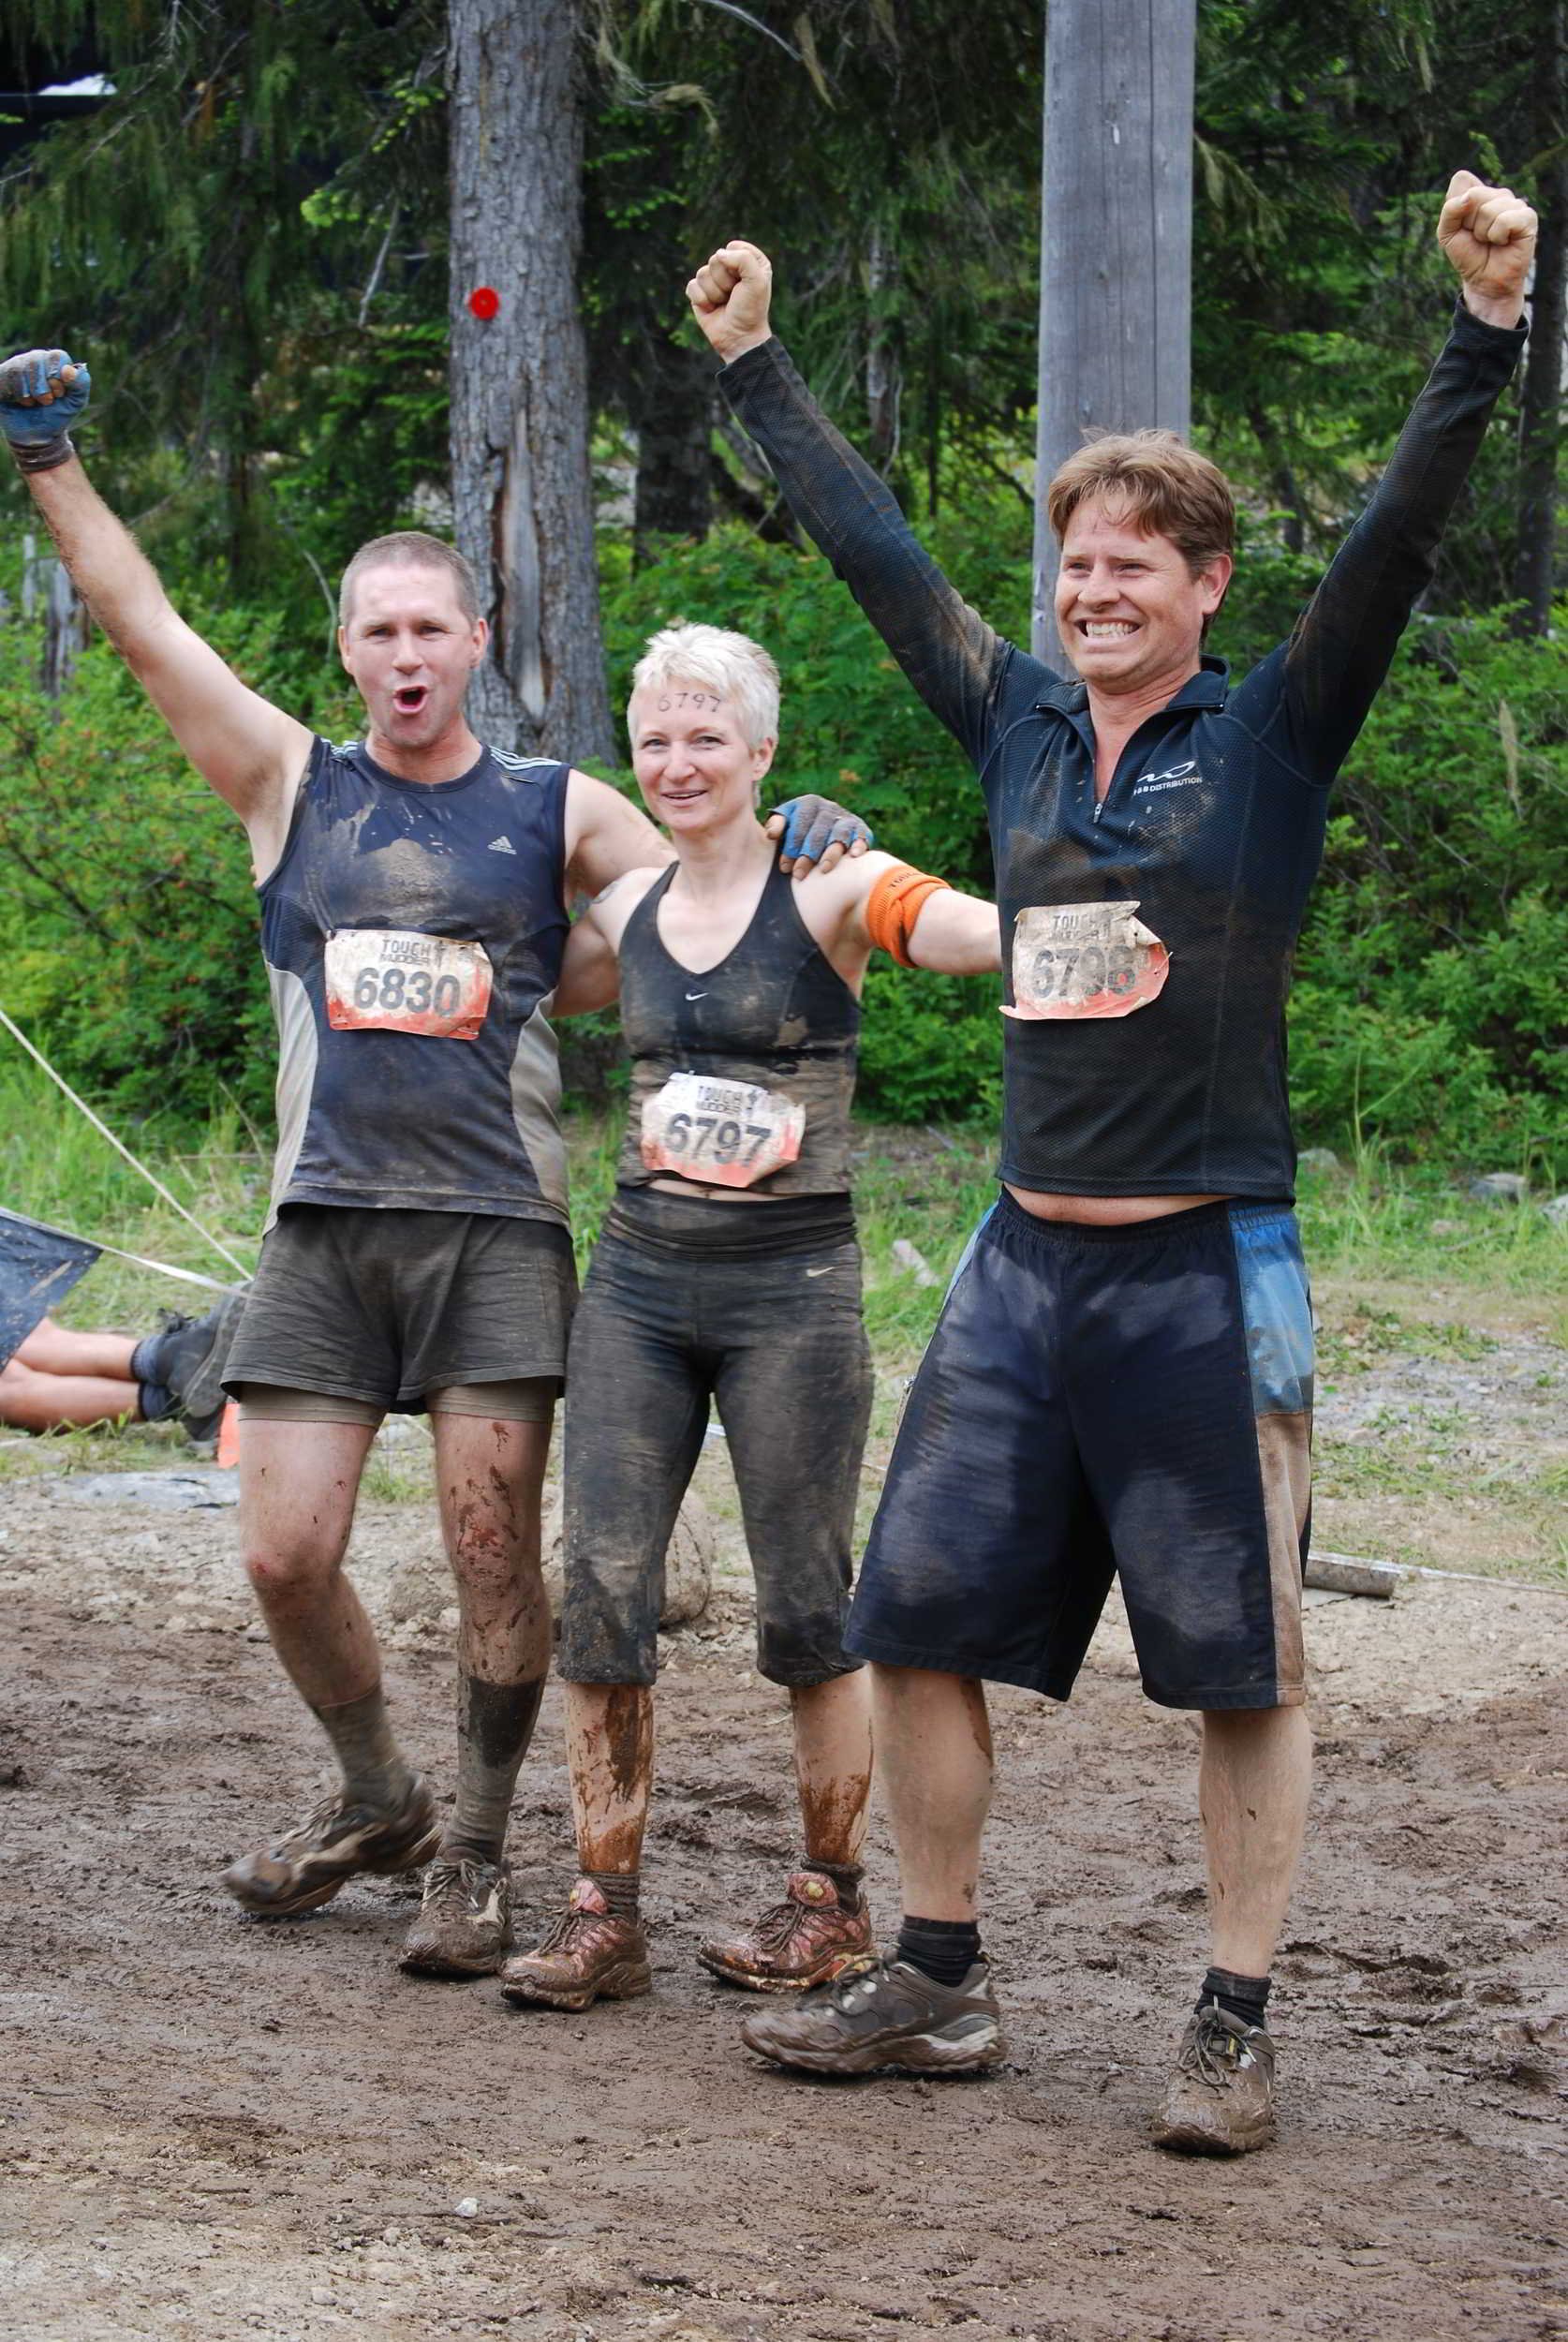 The End of Tough Mudder, Whistler, British Columbia, Canada